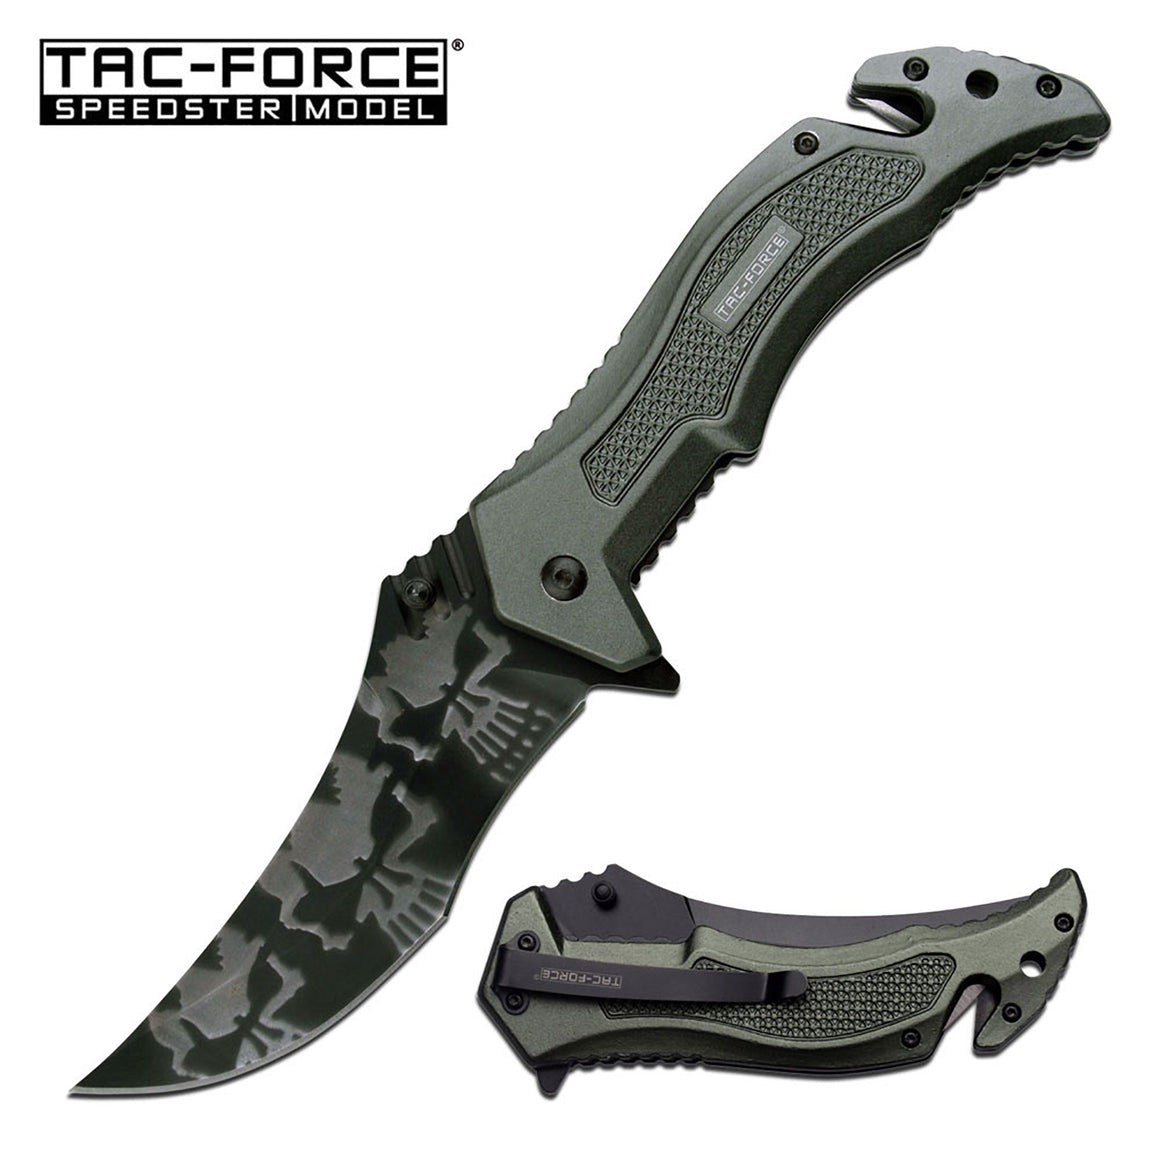 Tac-Force TF-946GN Spring Assisted Knife